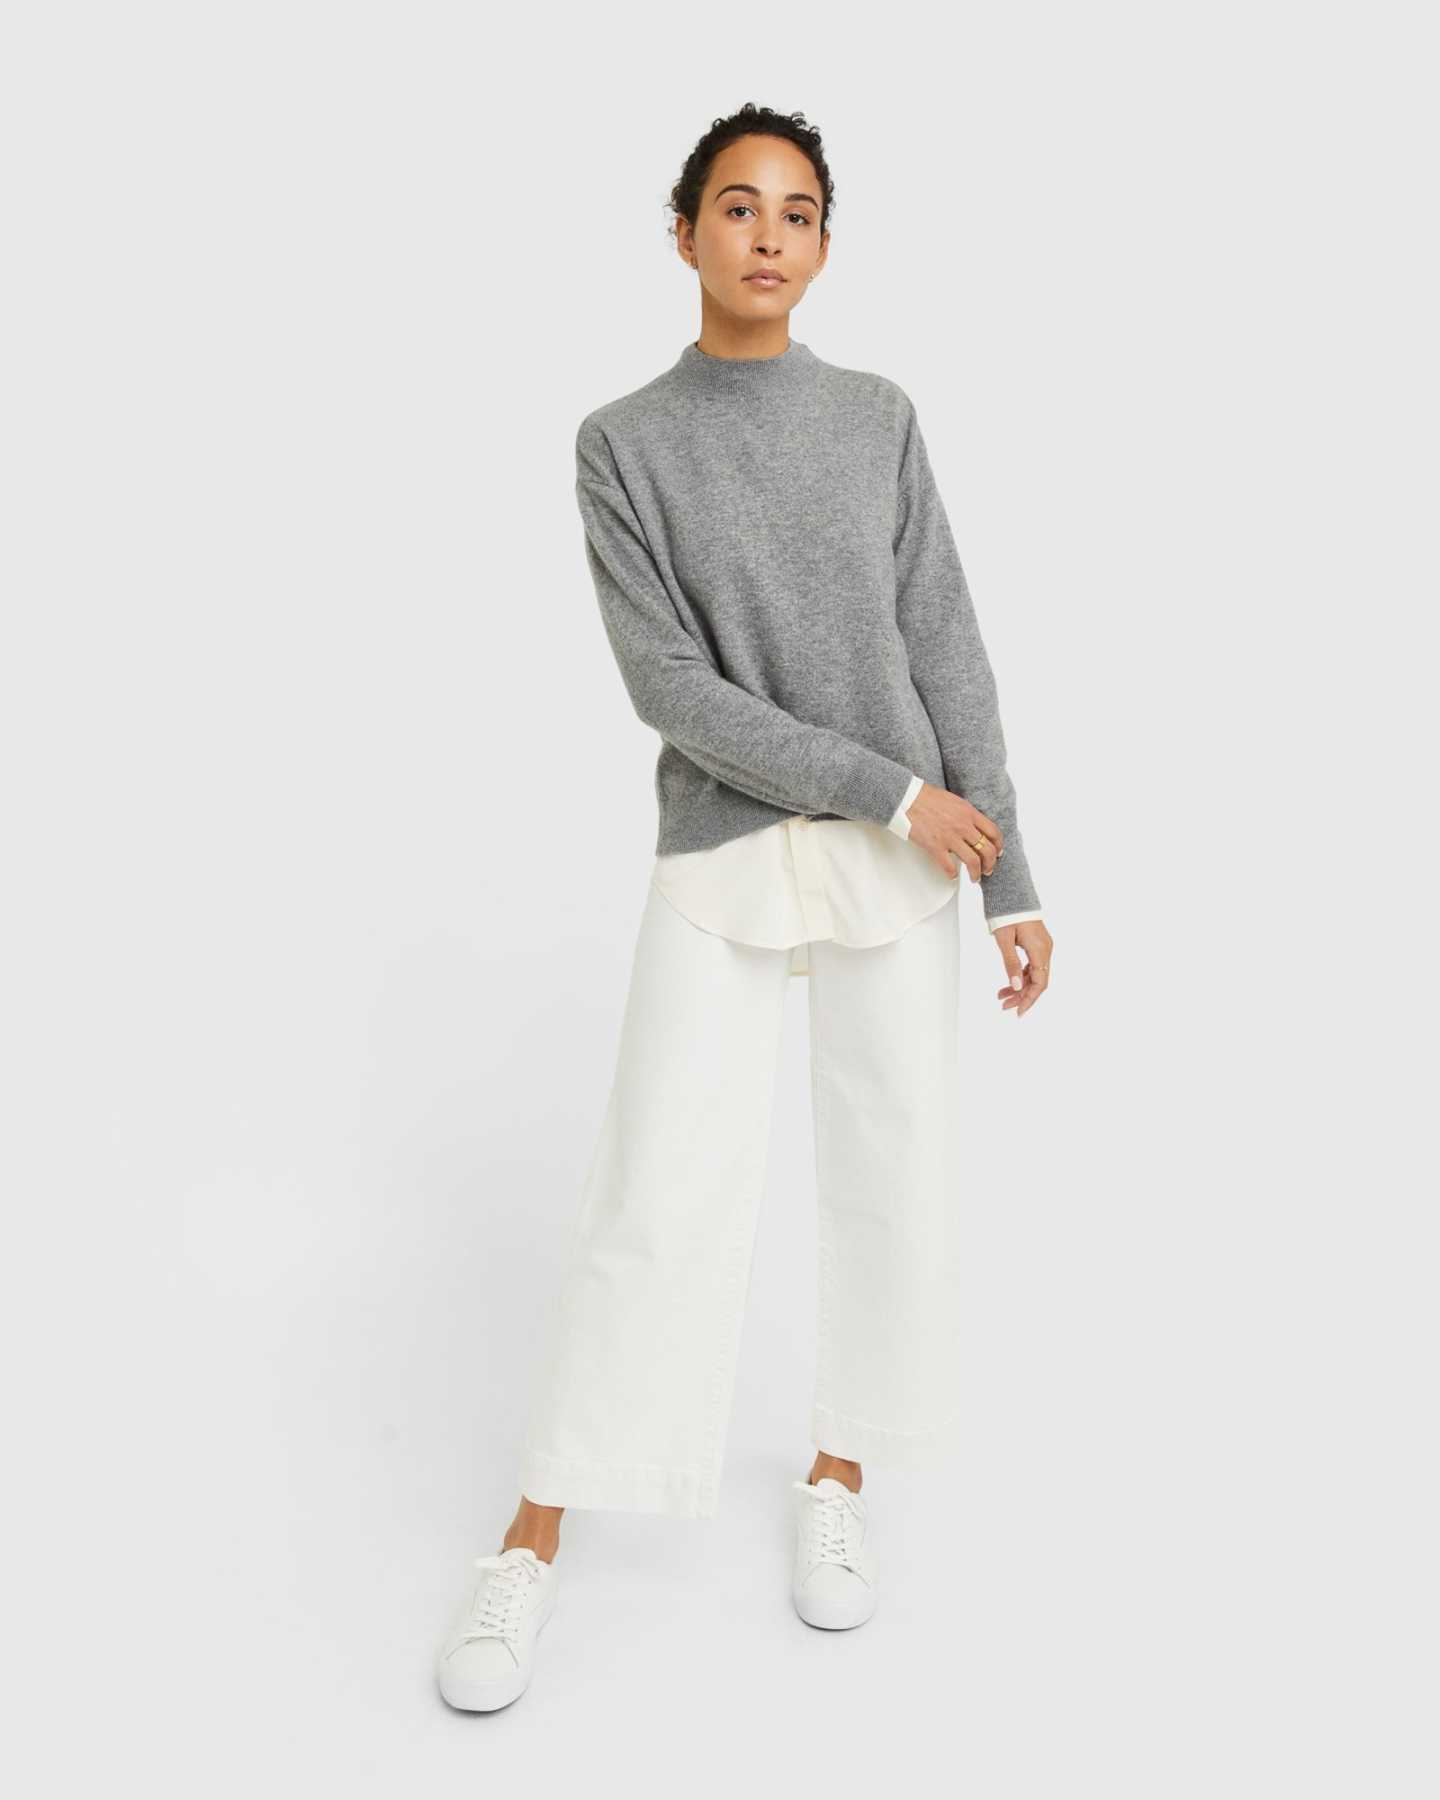 Woman wearing grey cashmere mockneck sweater standing